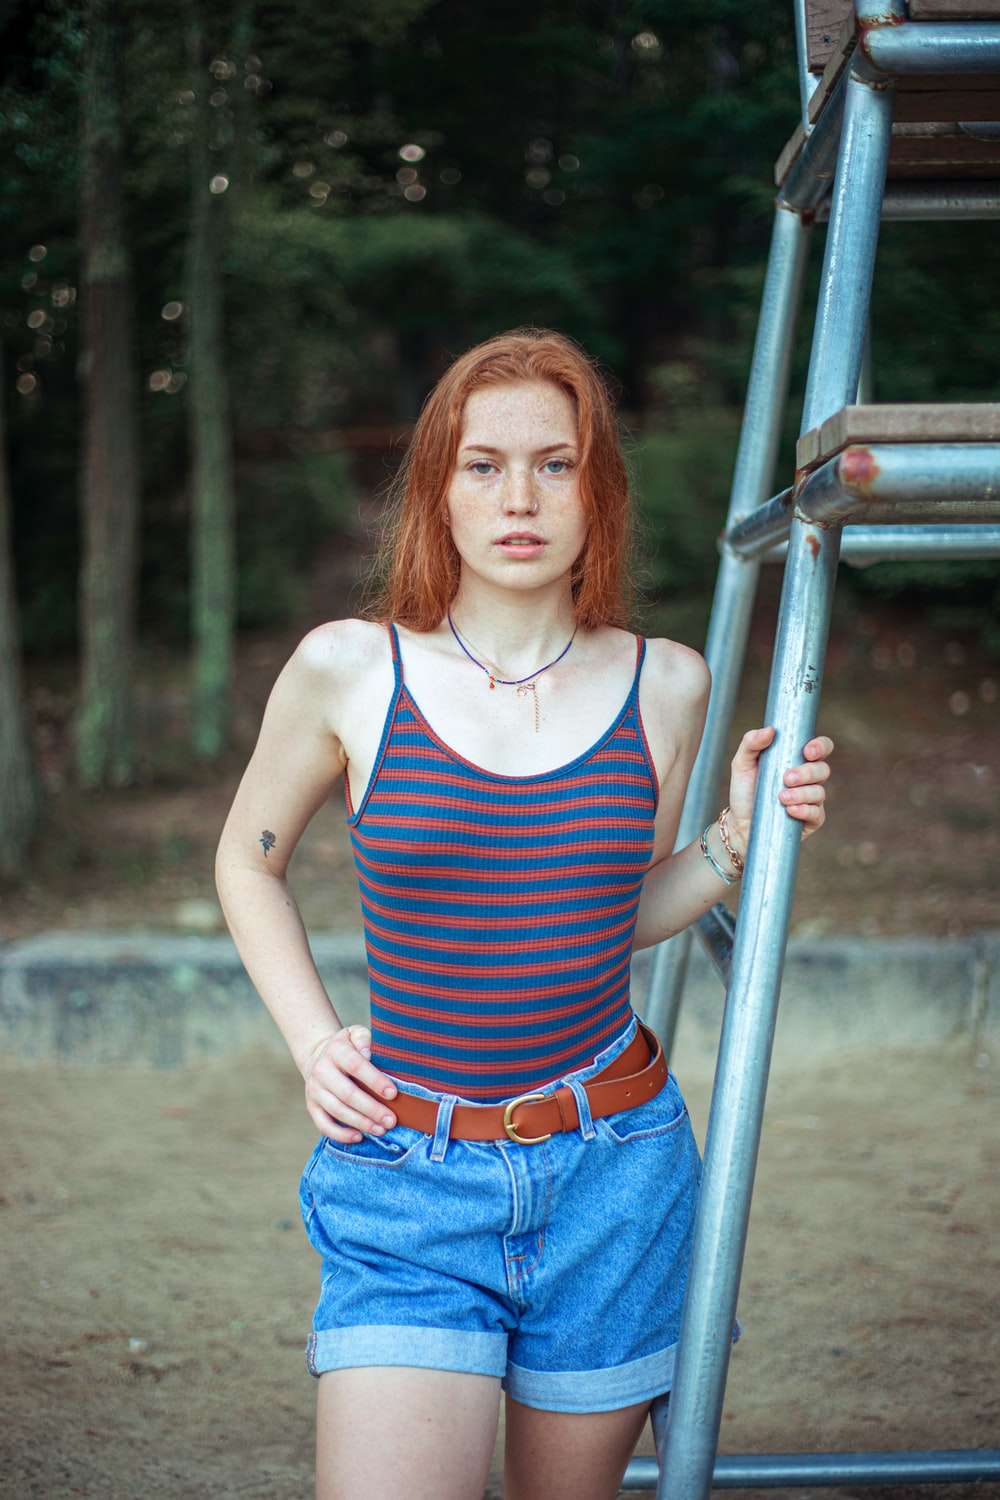 woman in blue and white stripe tank top and blue denim jeans standing beside gray metal